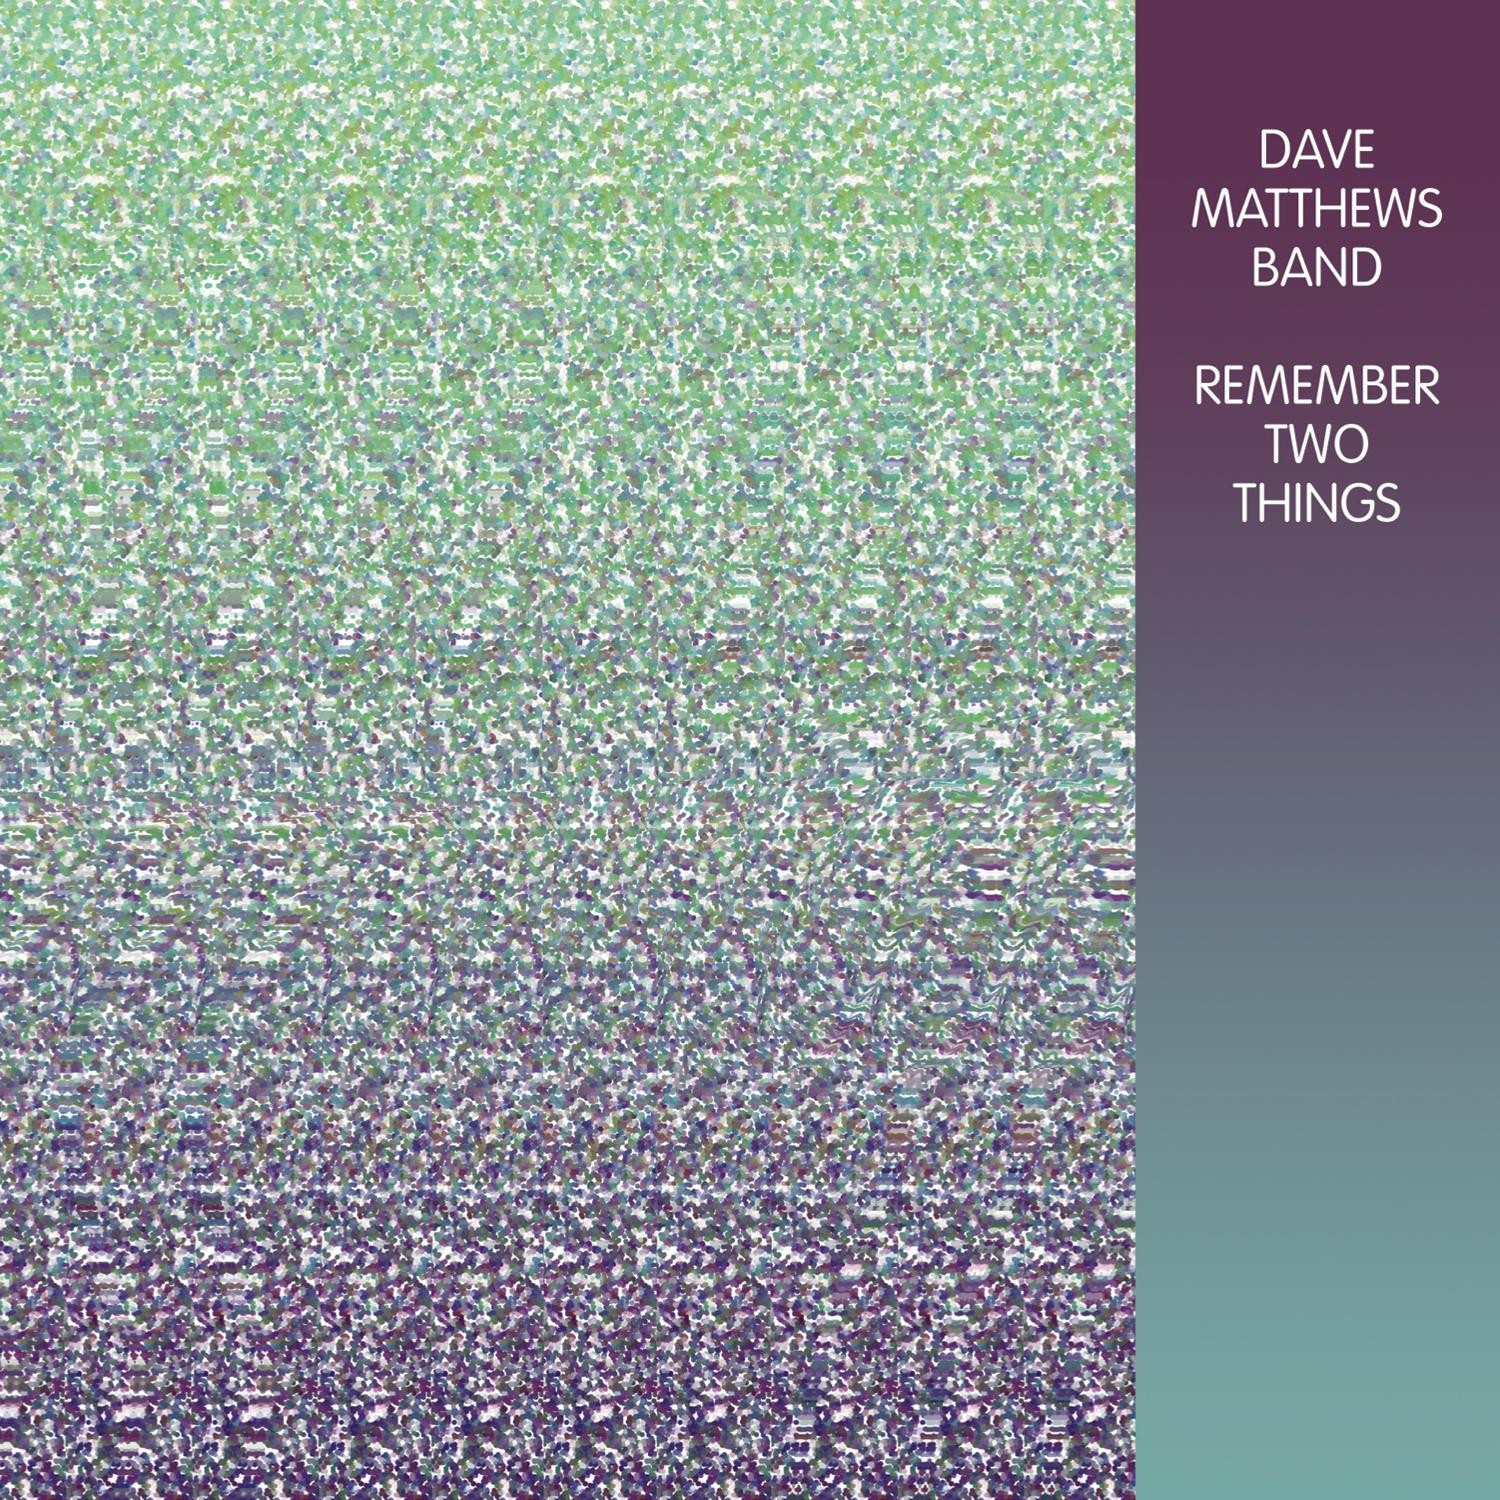 Dave Matthews Band - Remember Two Things 2XLP